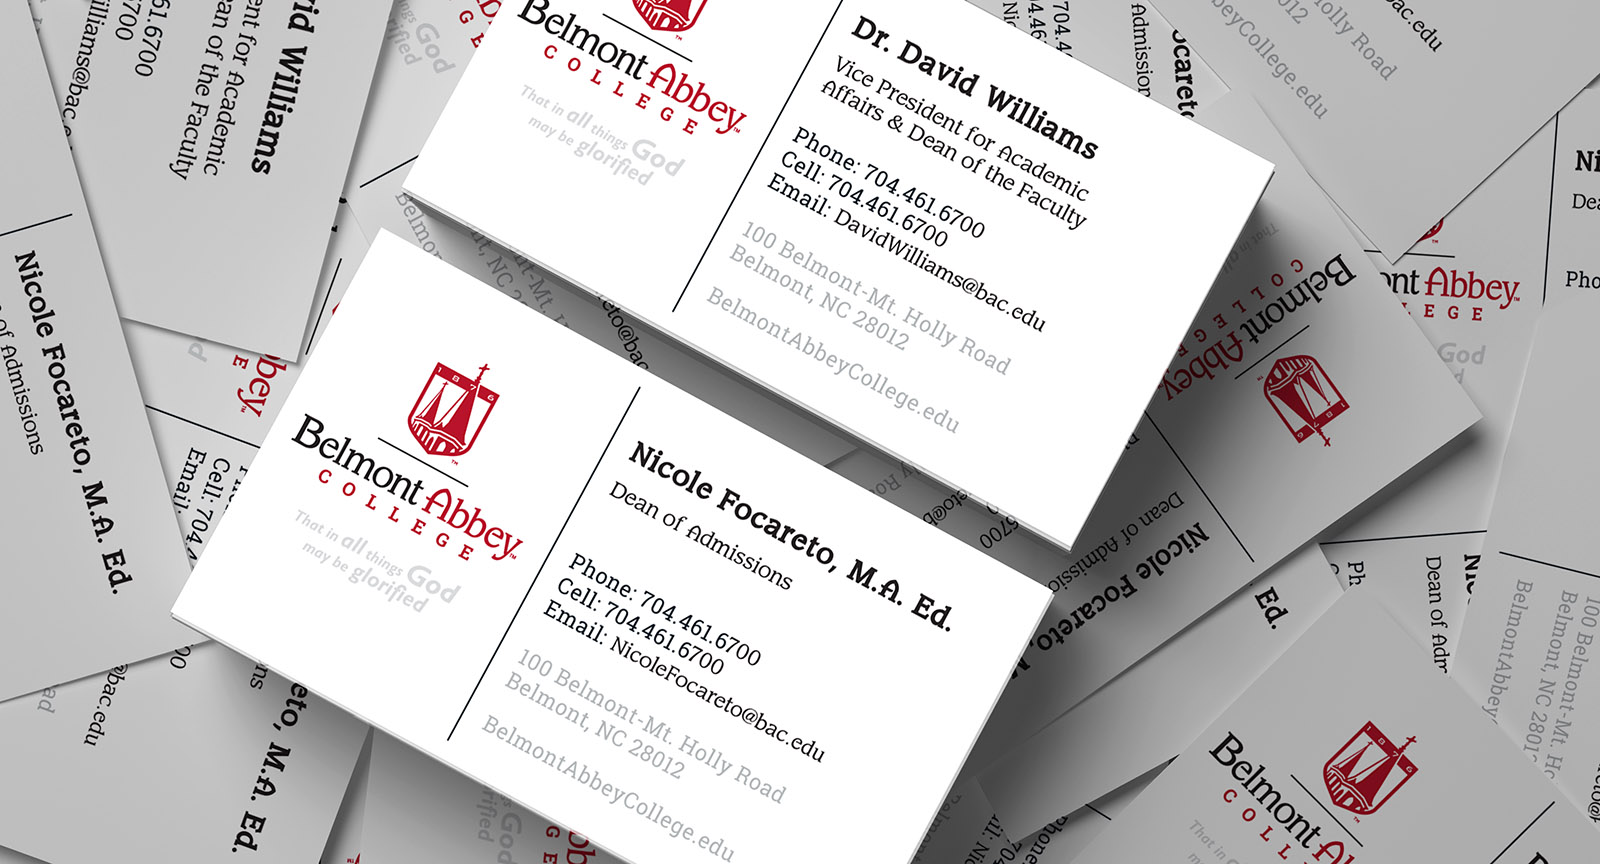 bac-cards